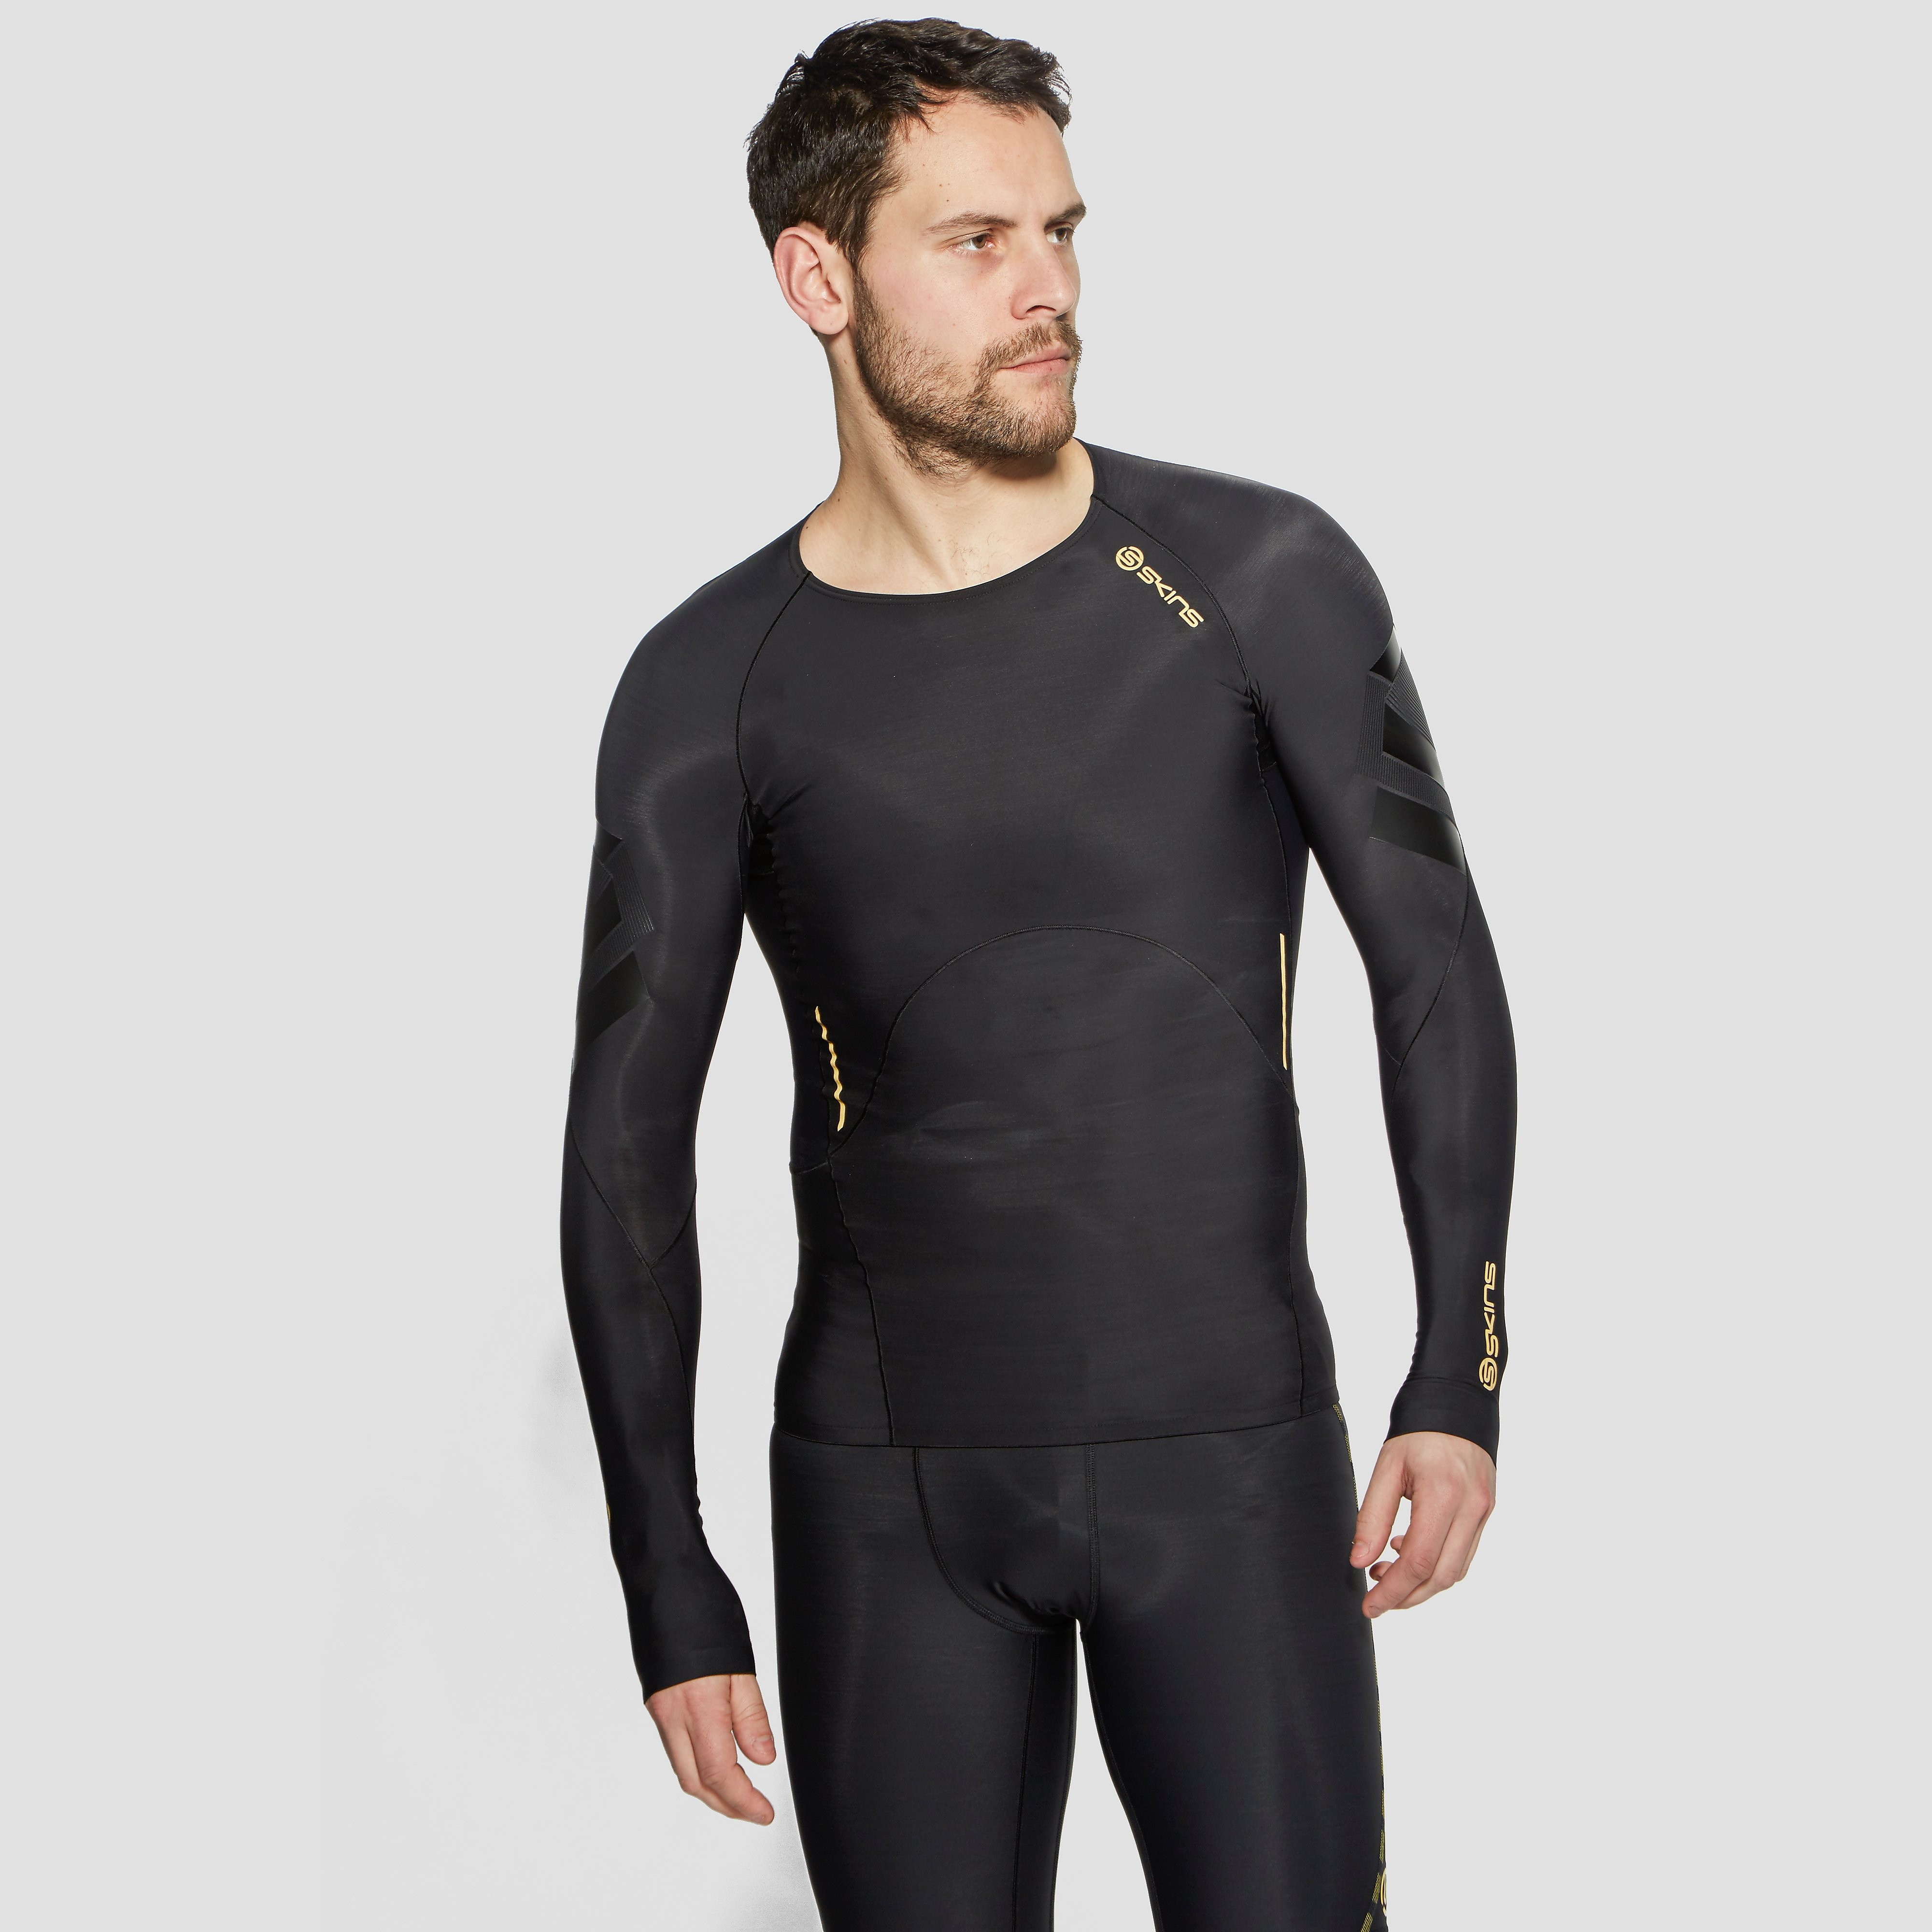 Skins A400 Men's Compression Top